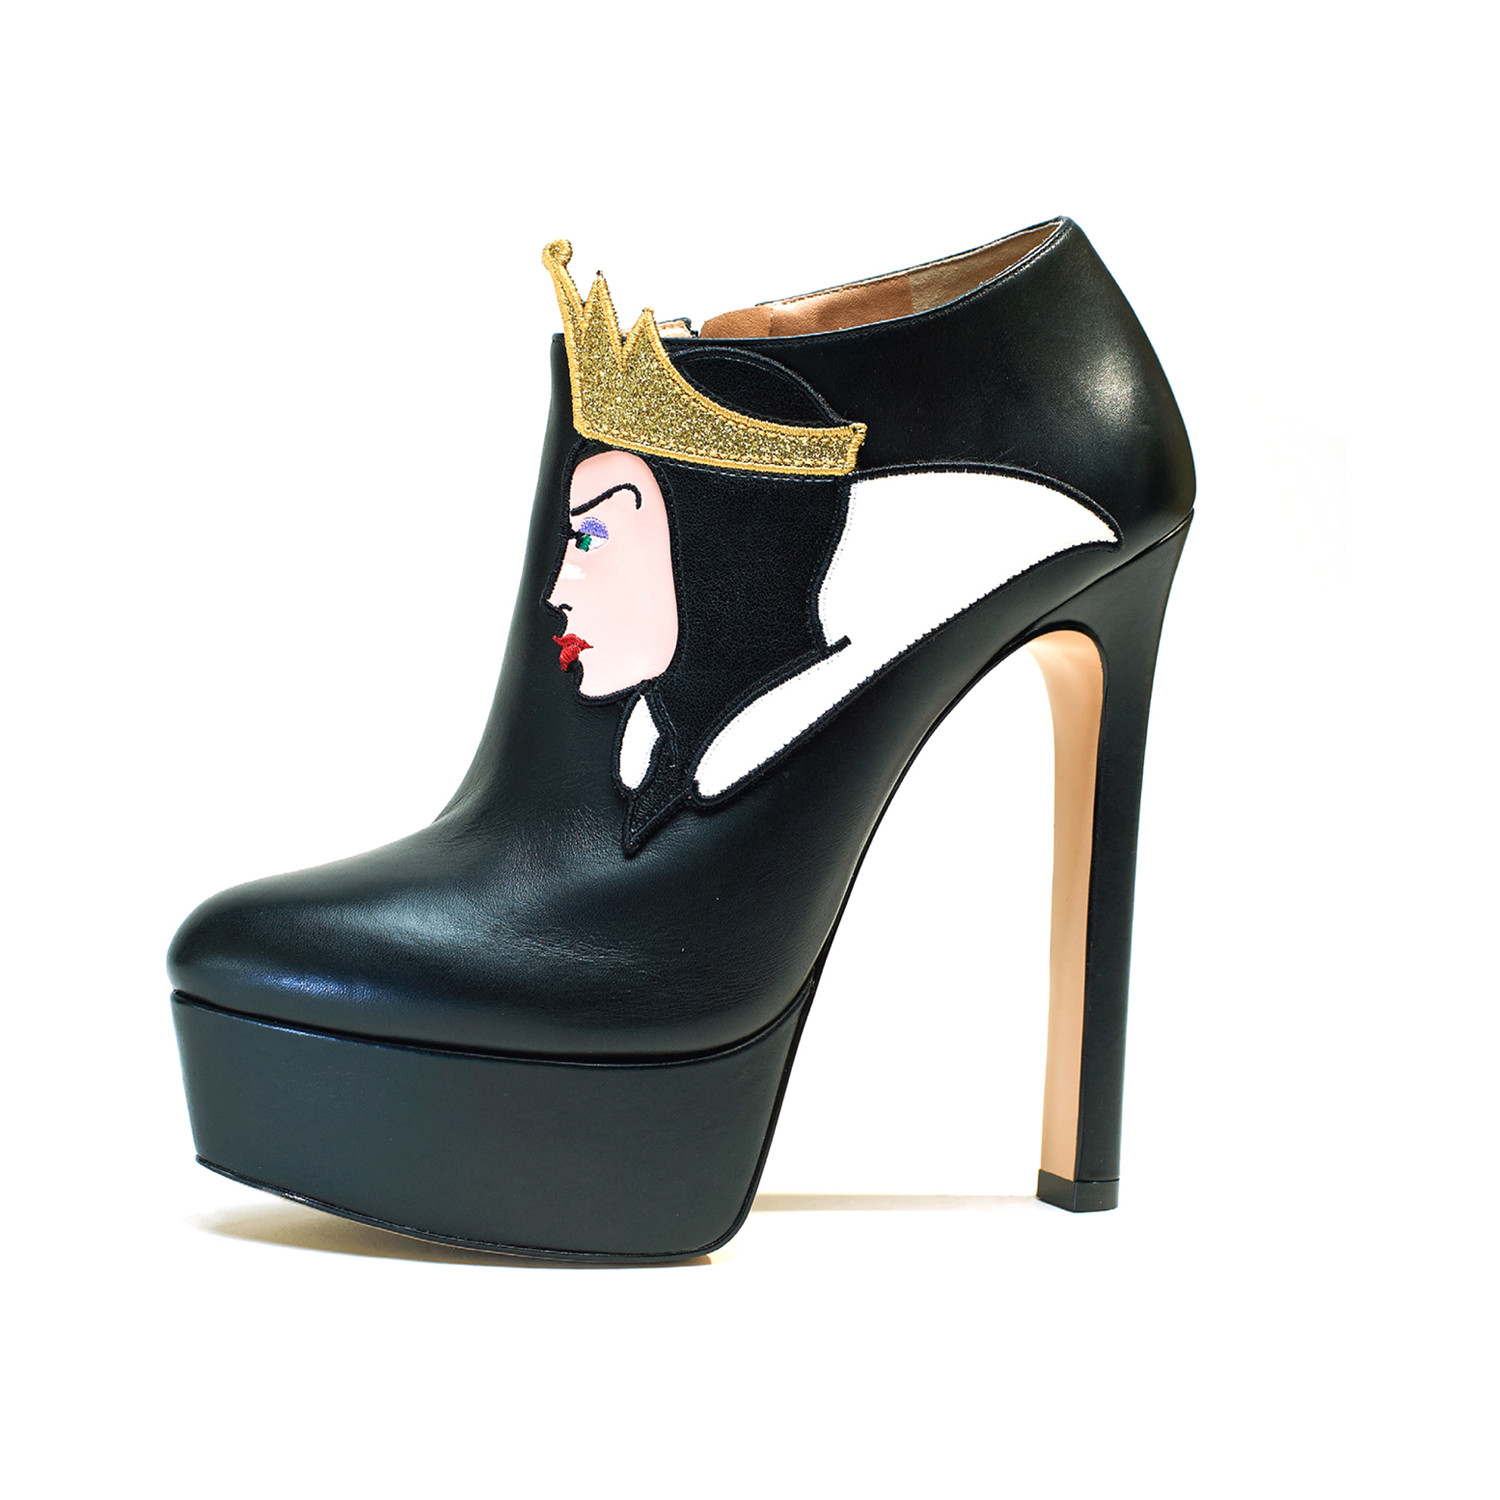 Good Vs. Evil - Disney X Ruthie Davis (VILLAINS)